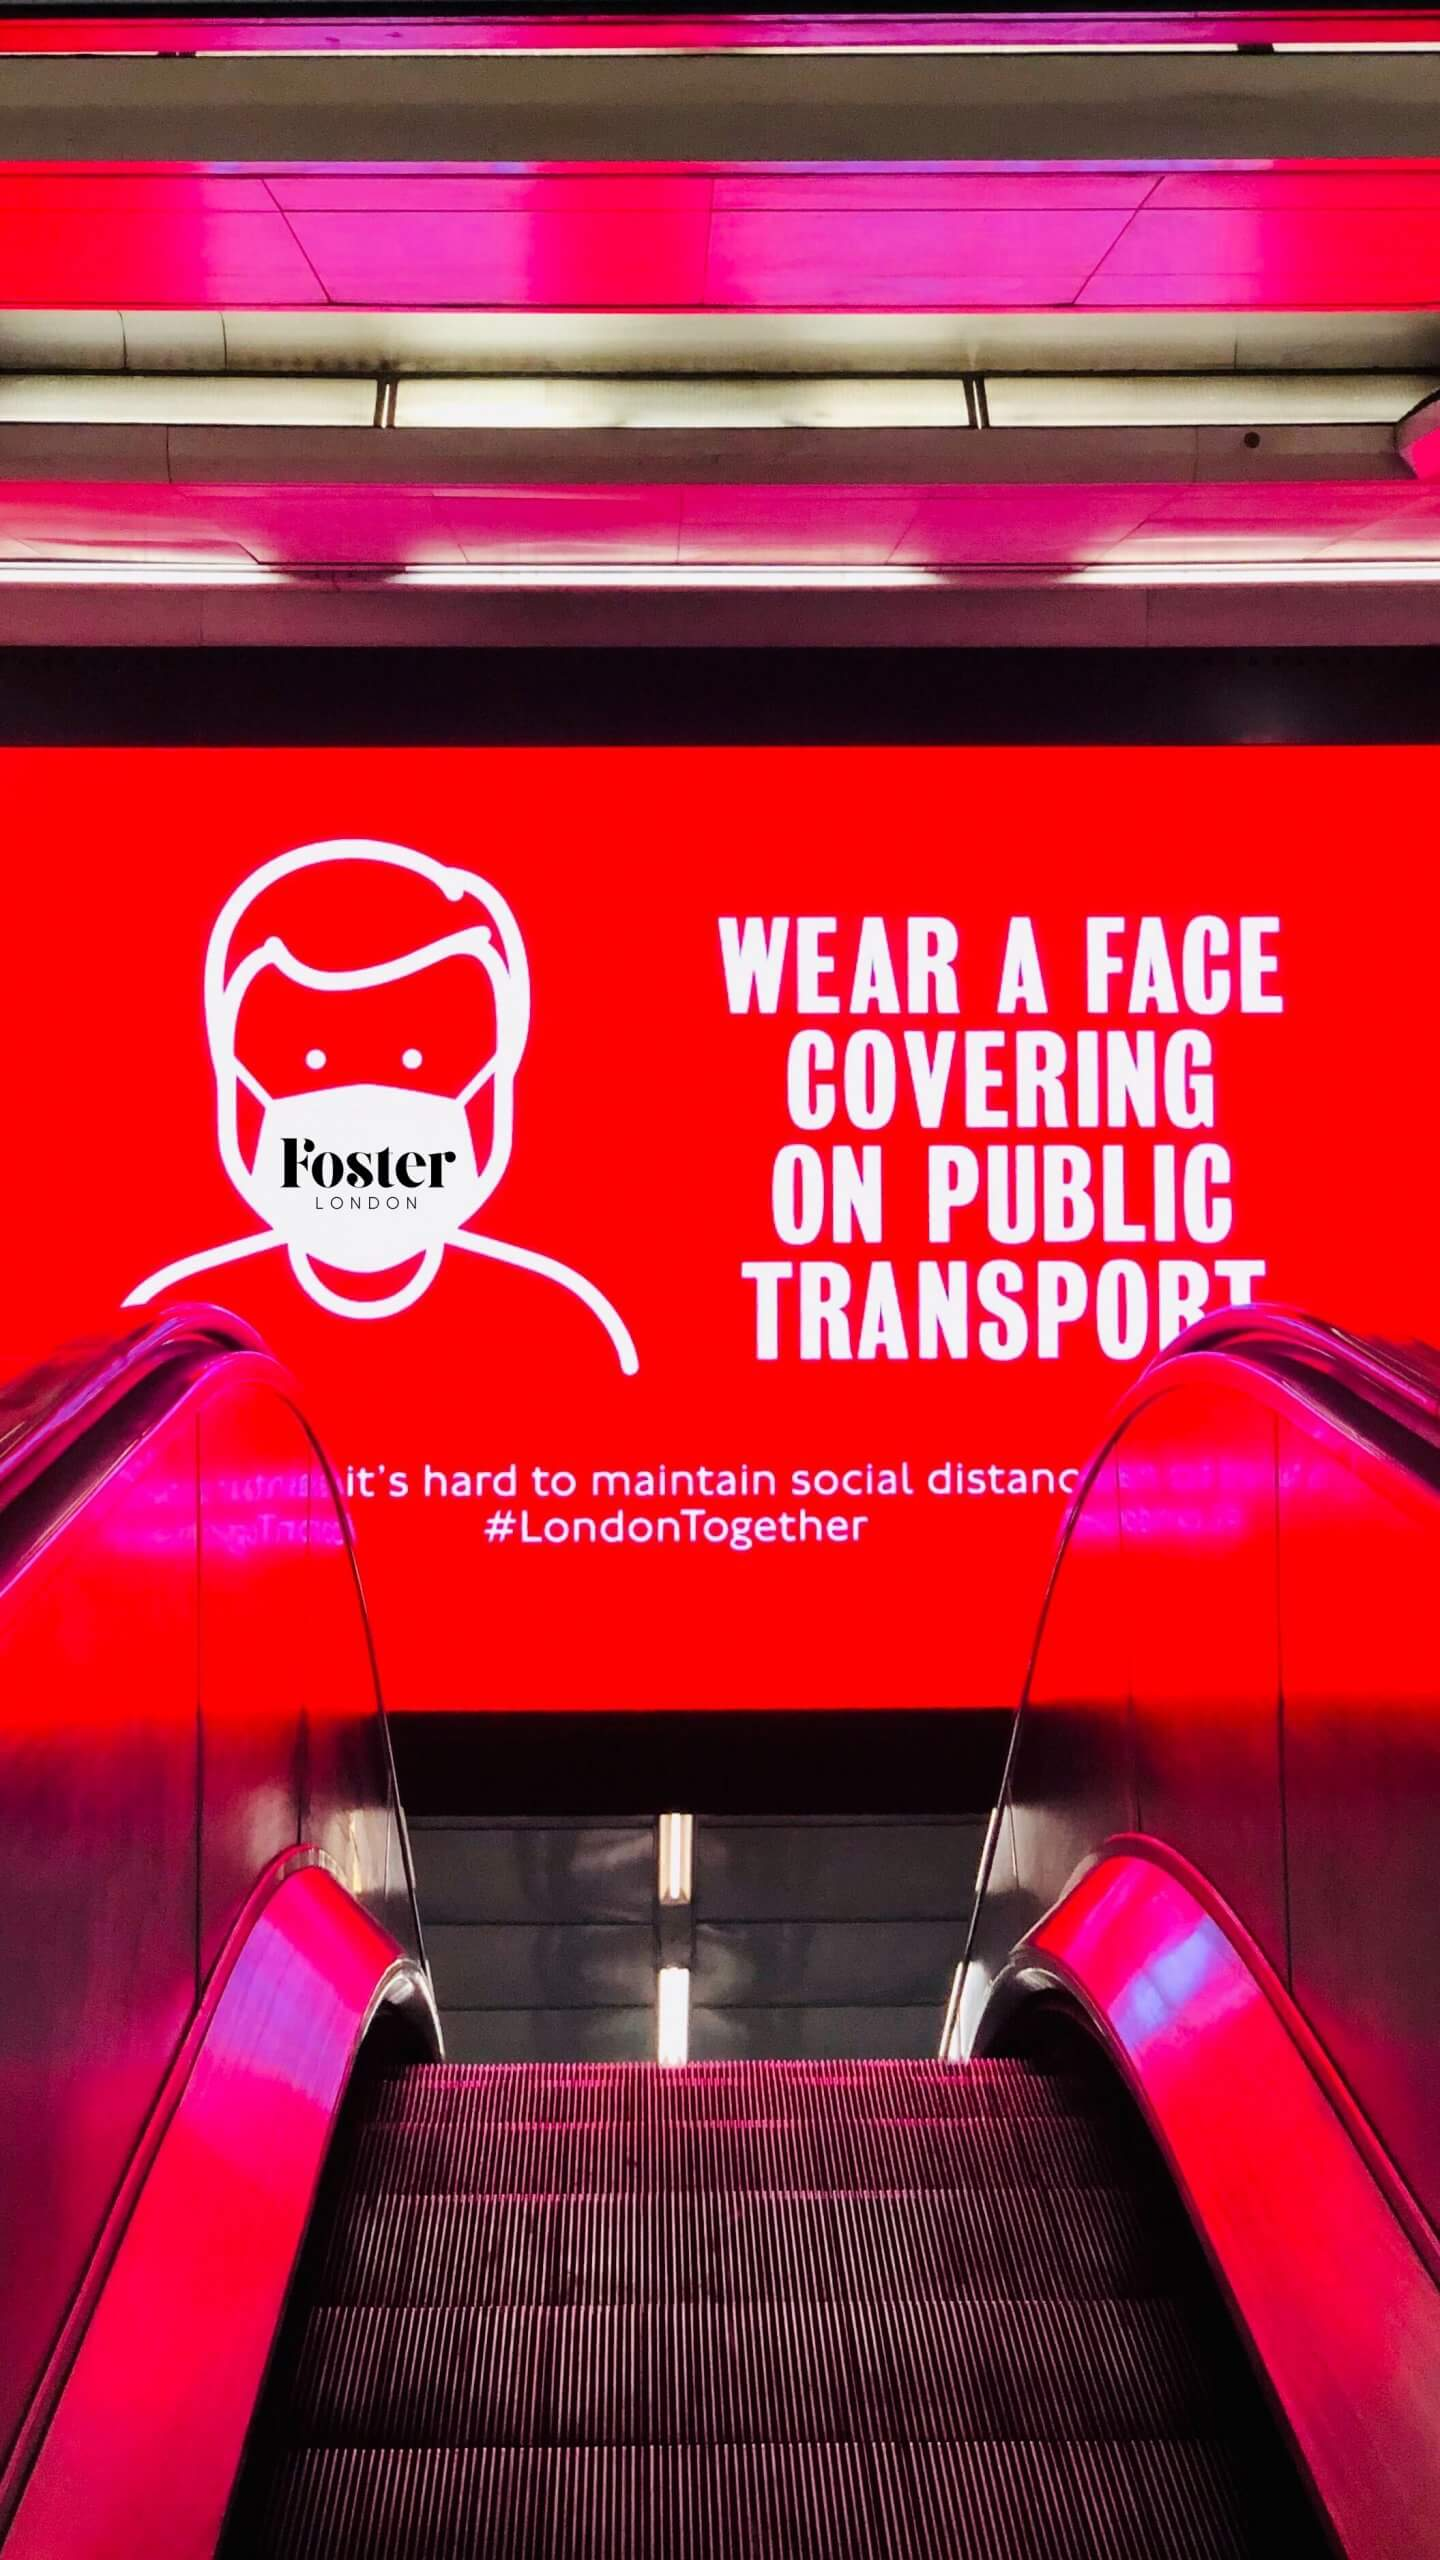 Foster London Face Mask Poster